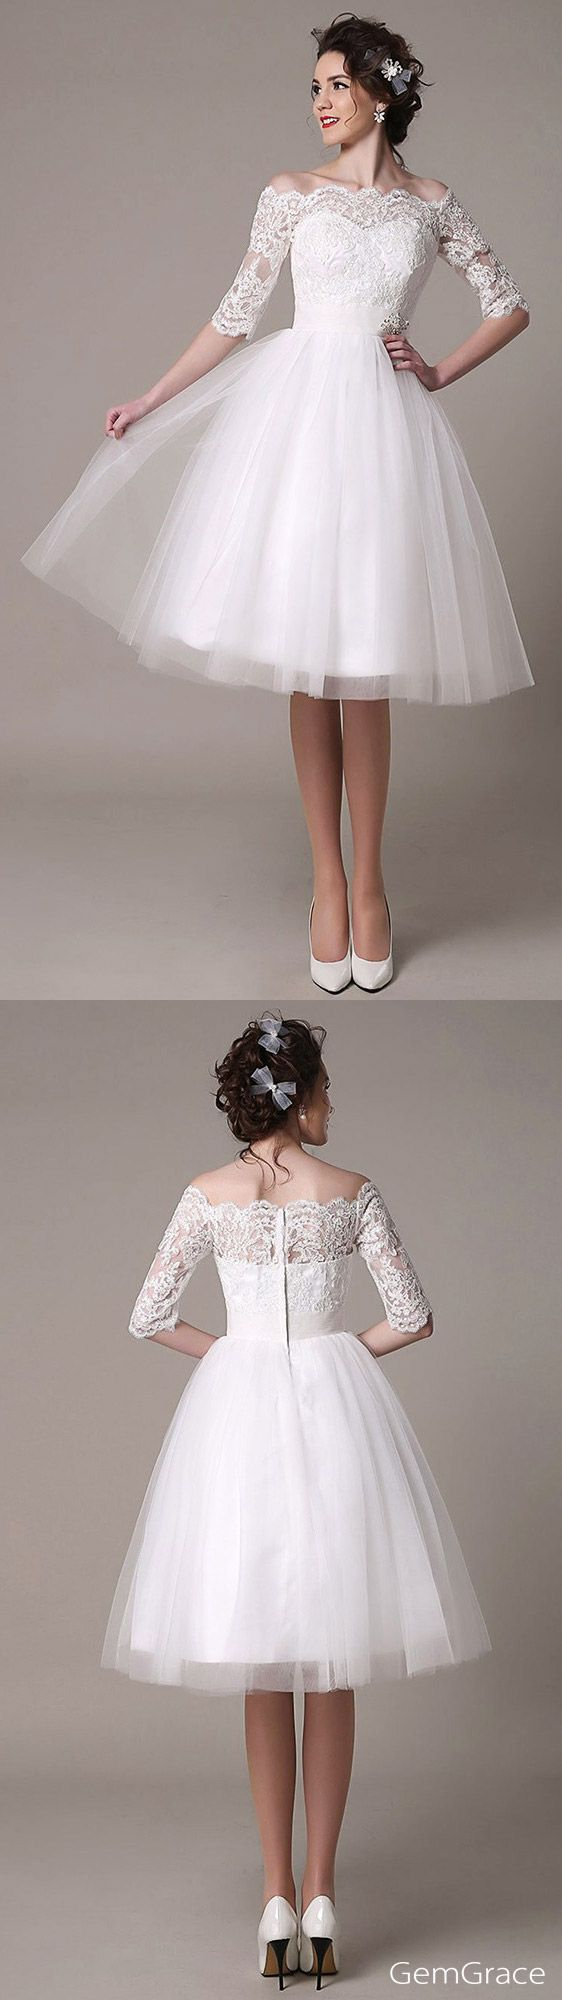 best 25+ short lace wedding dress ideas on pinterest | reception